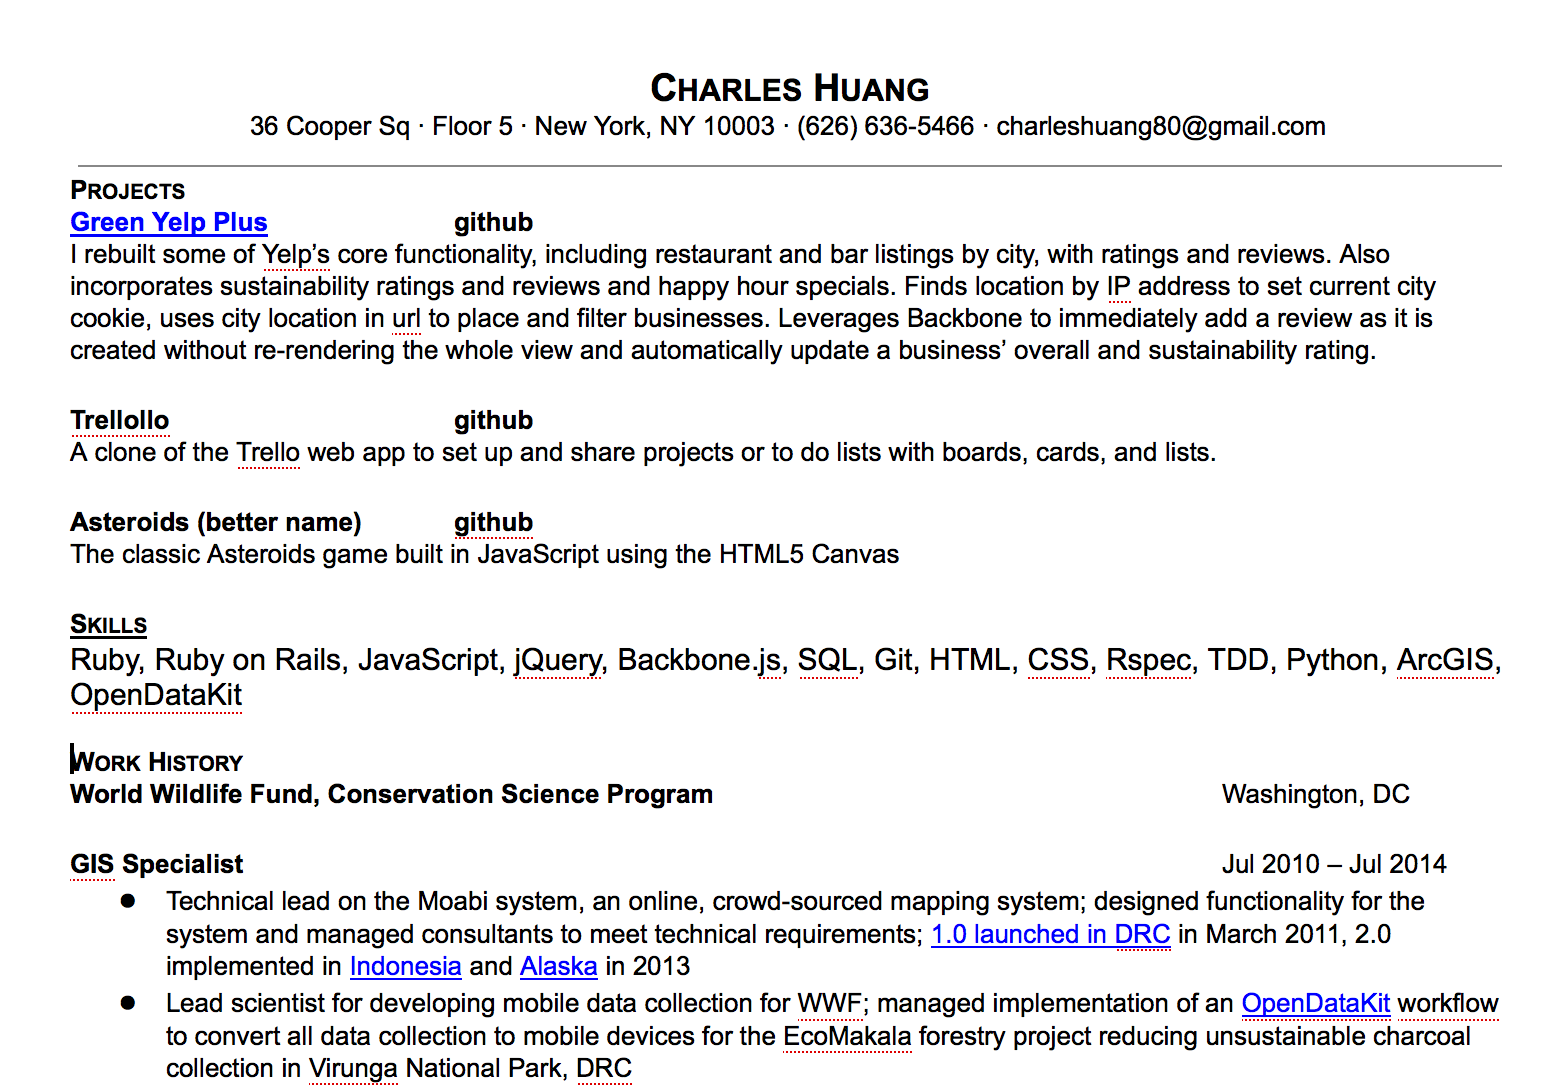 charles huang web developer